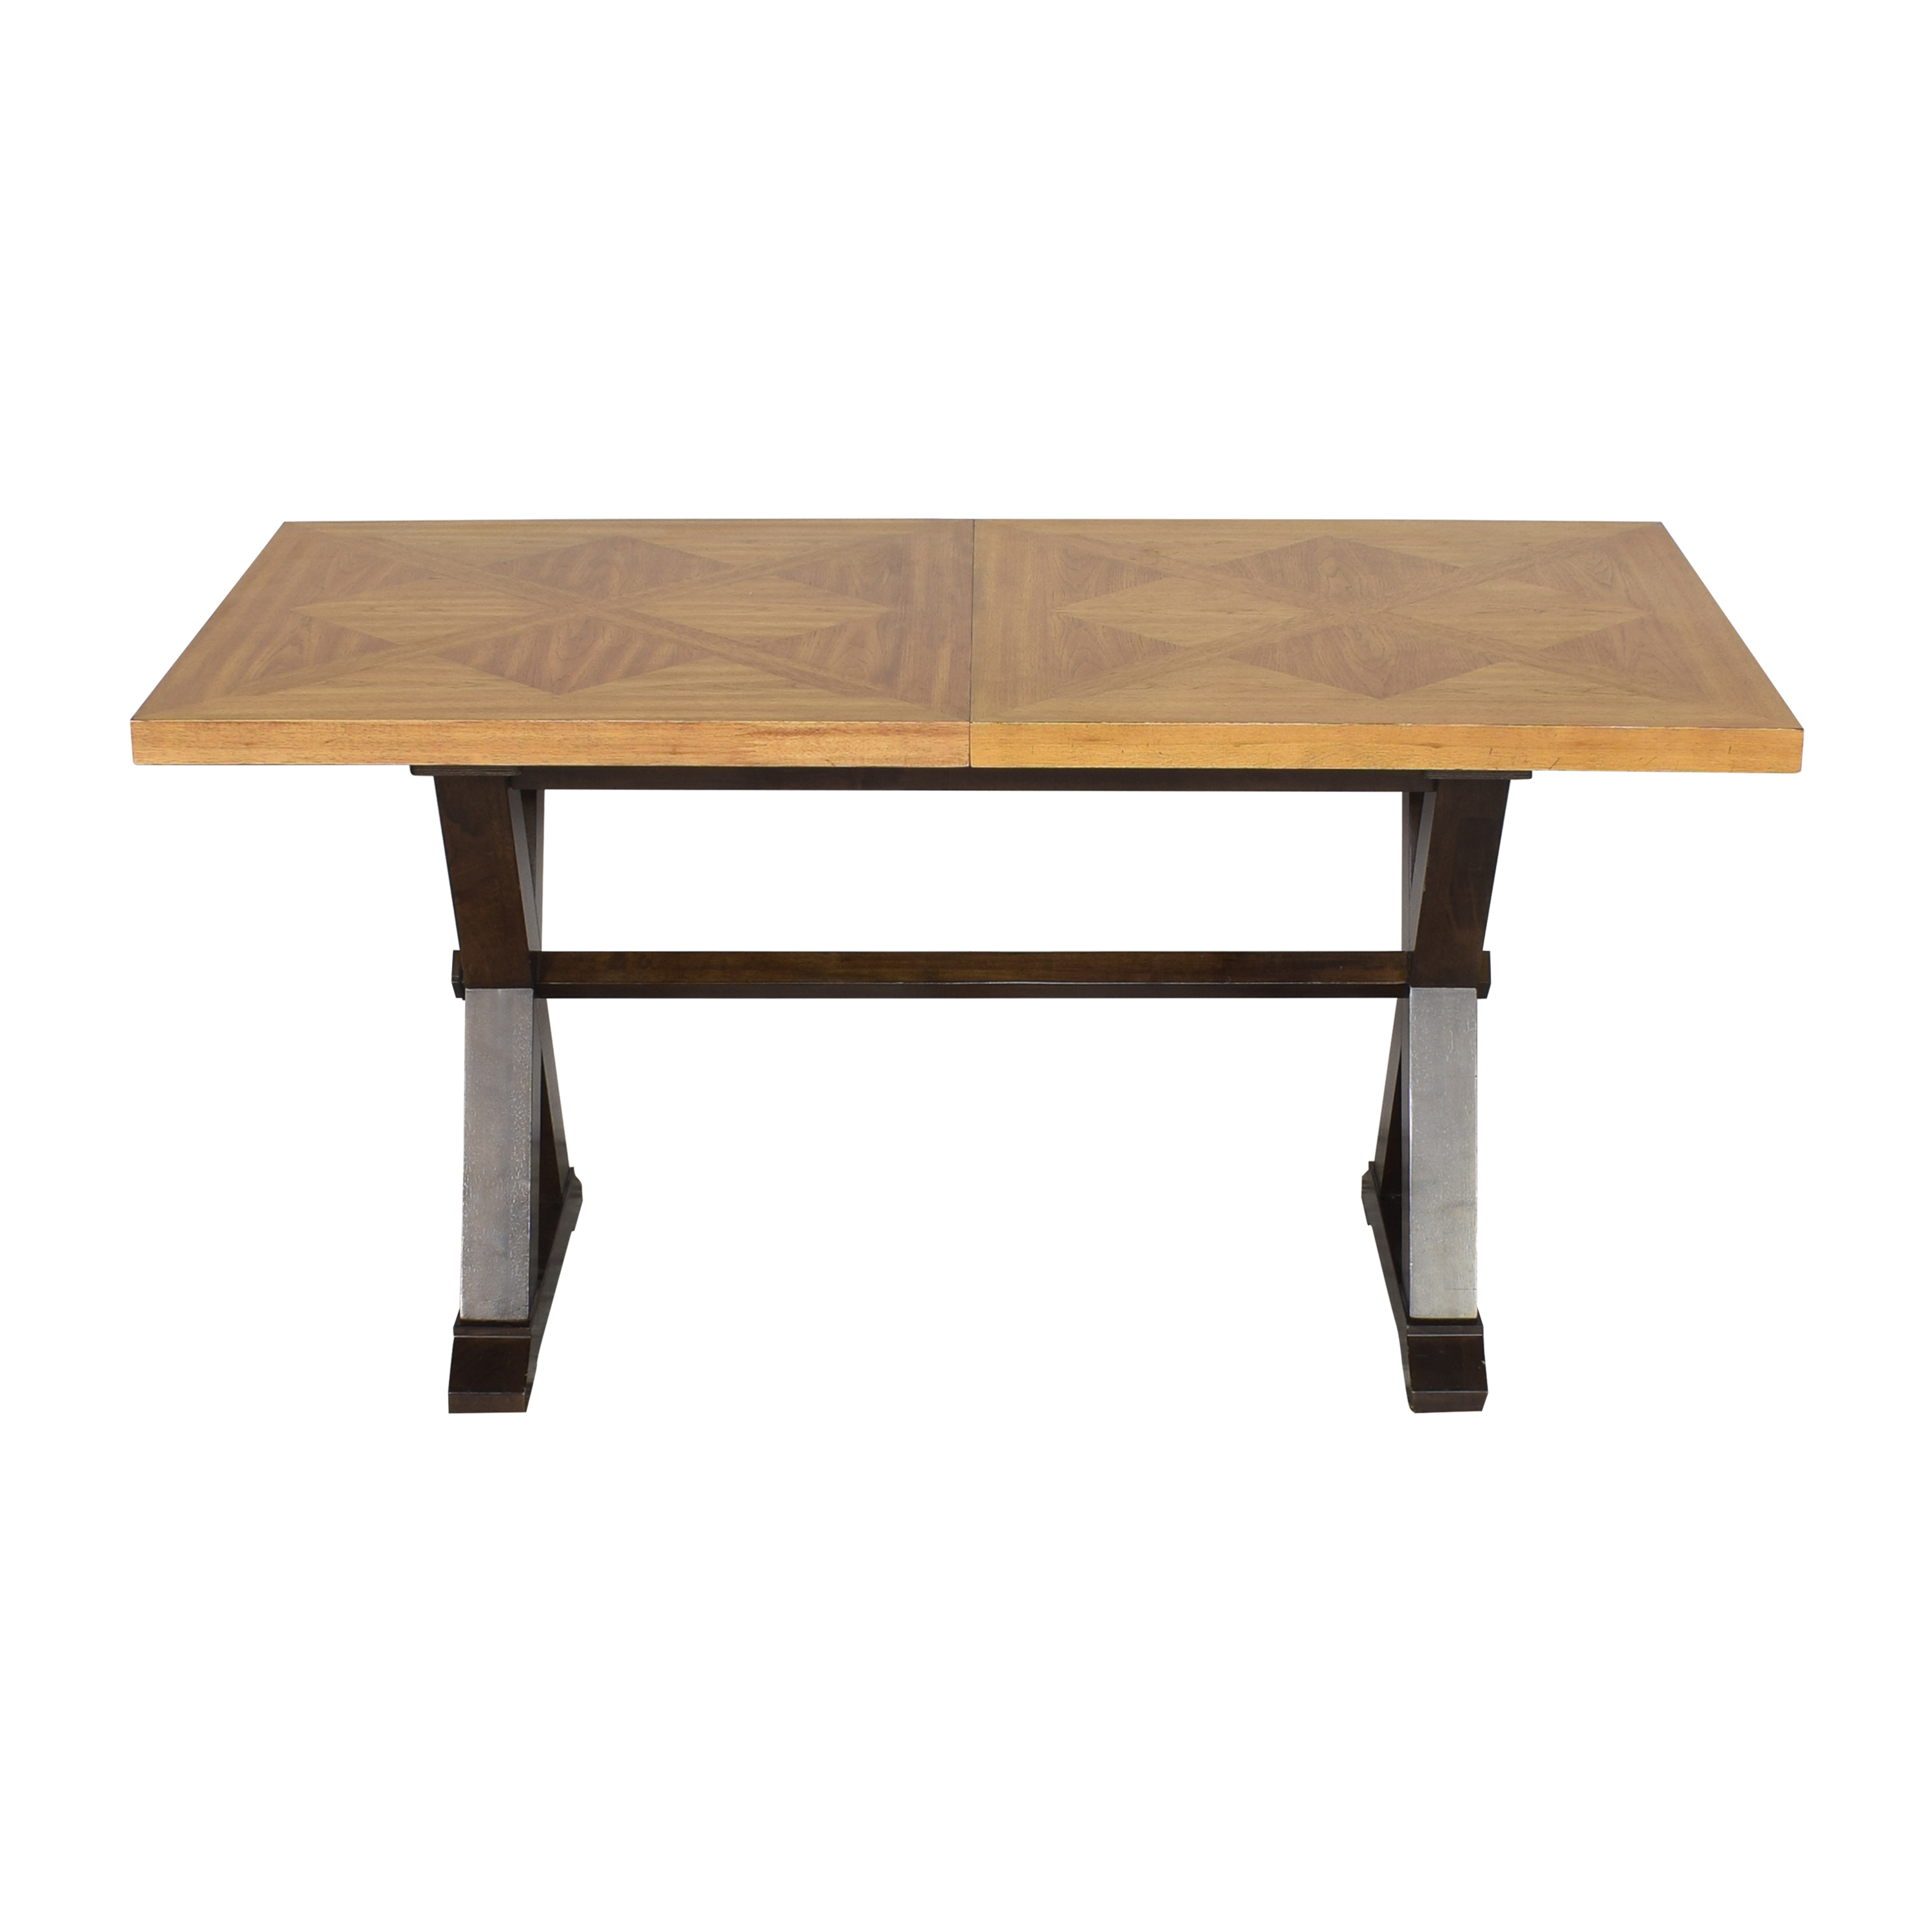 buy Raymour & Flanigan  Raymour & Flanigan Wexford Counter Height Dining Table online